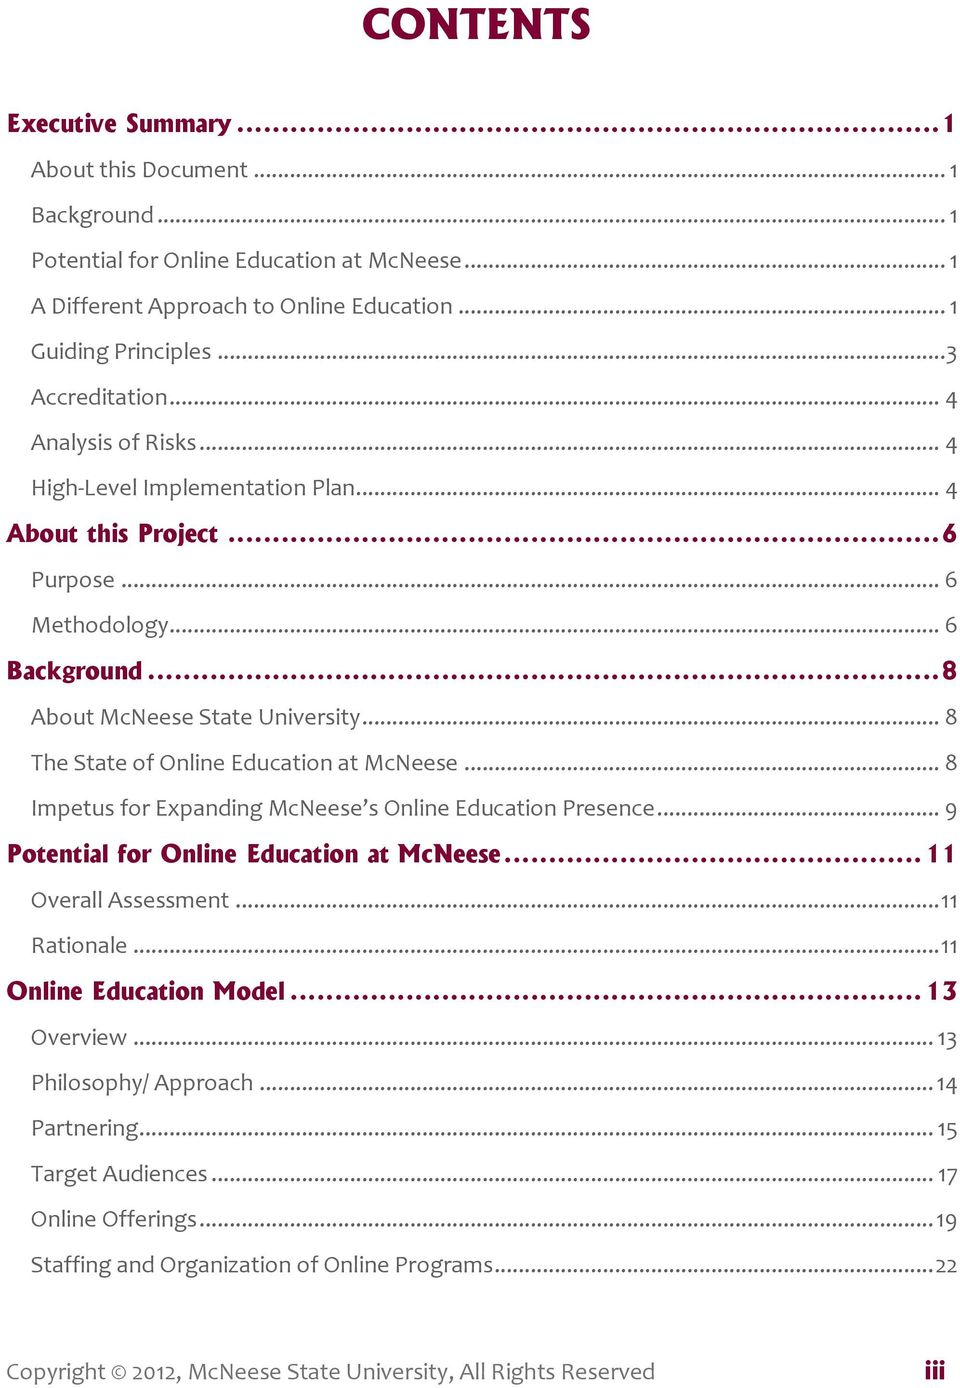 .. 8 The State of Online Education at McNeese... 8 Impetus for Expanding McNeese s Online Education Presence... 9 Potential for Online Education at McNeese... 11 Overall Assessment... 11 Rationale.